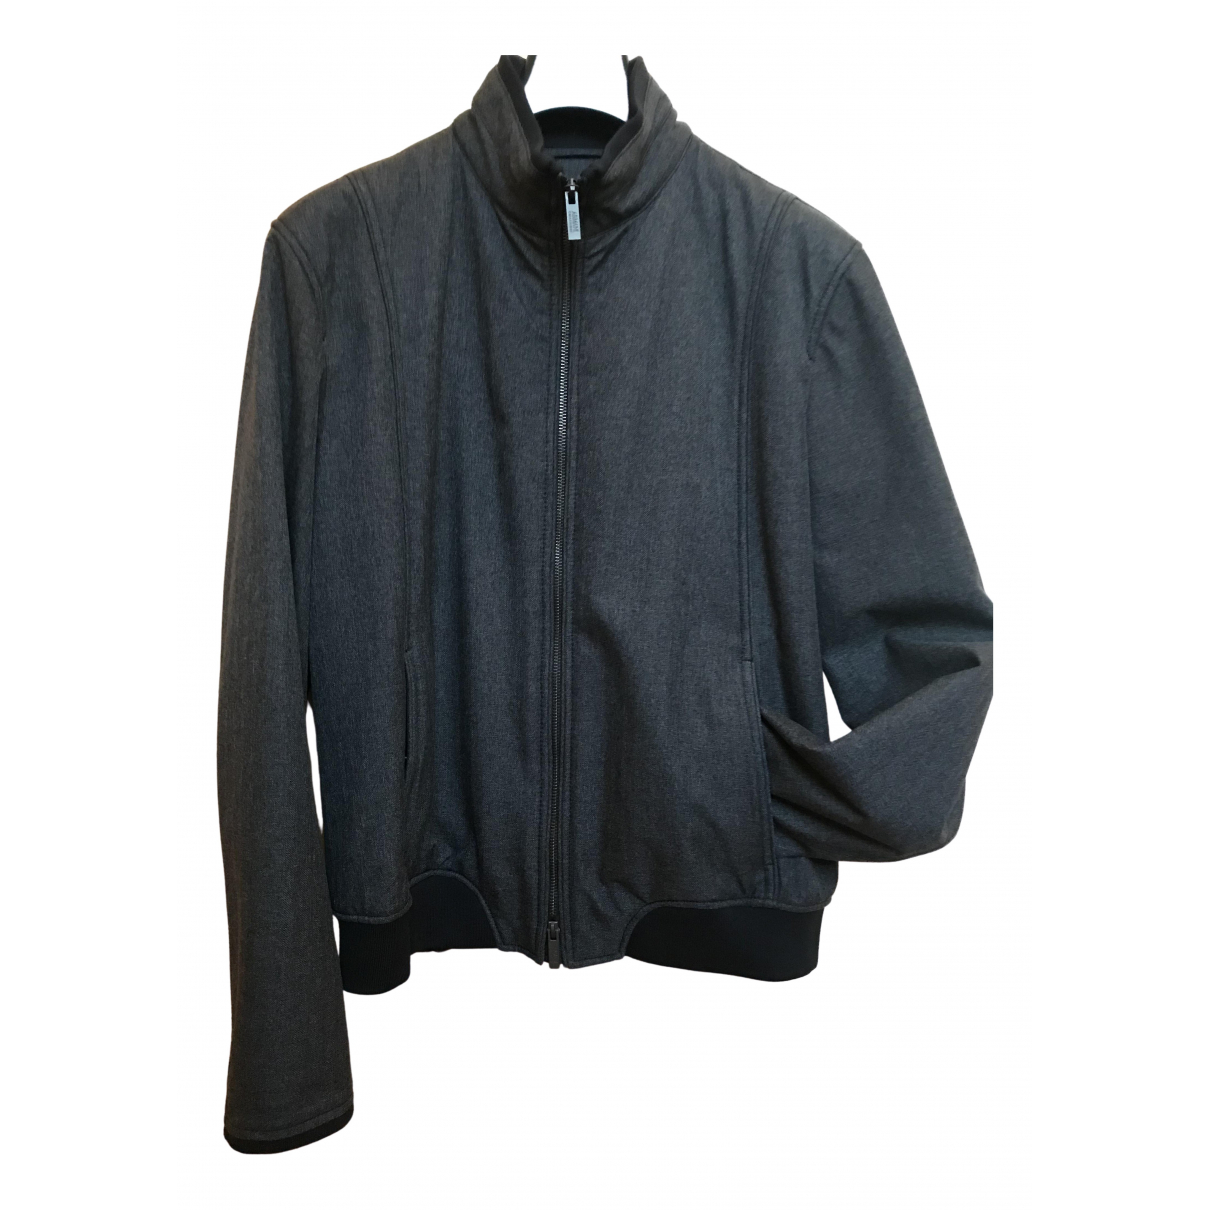 Armani Collezioni \N Grey jacket  for Men 50 IT